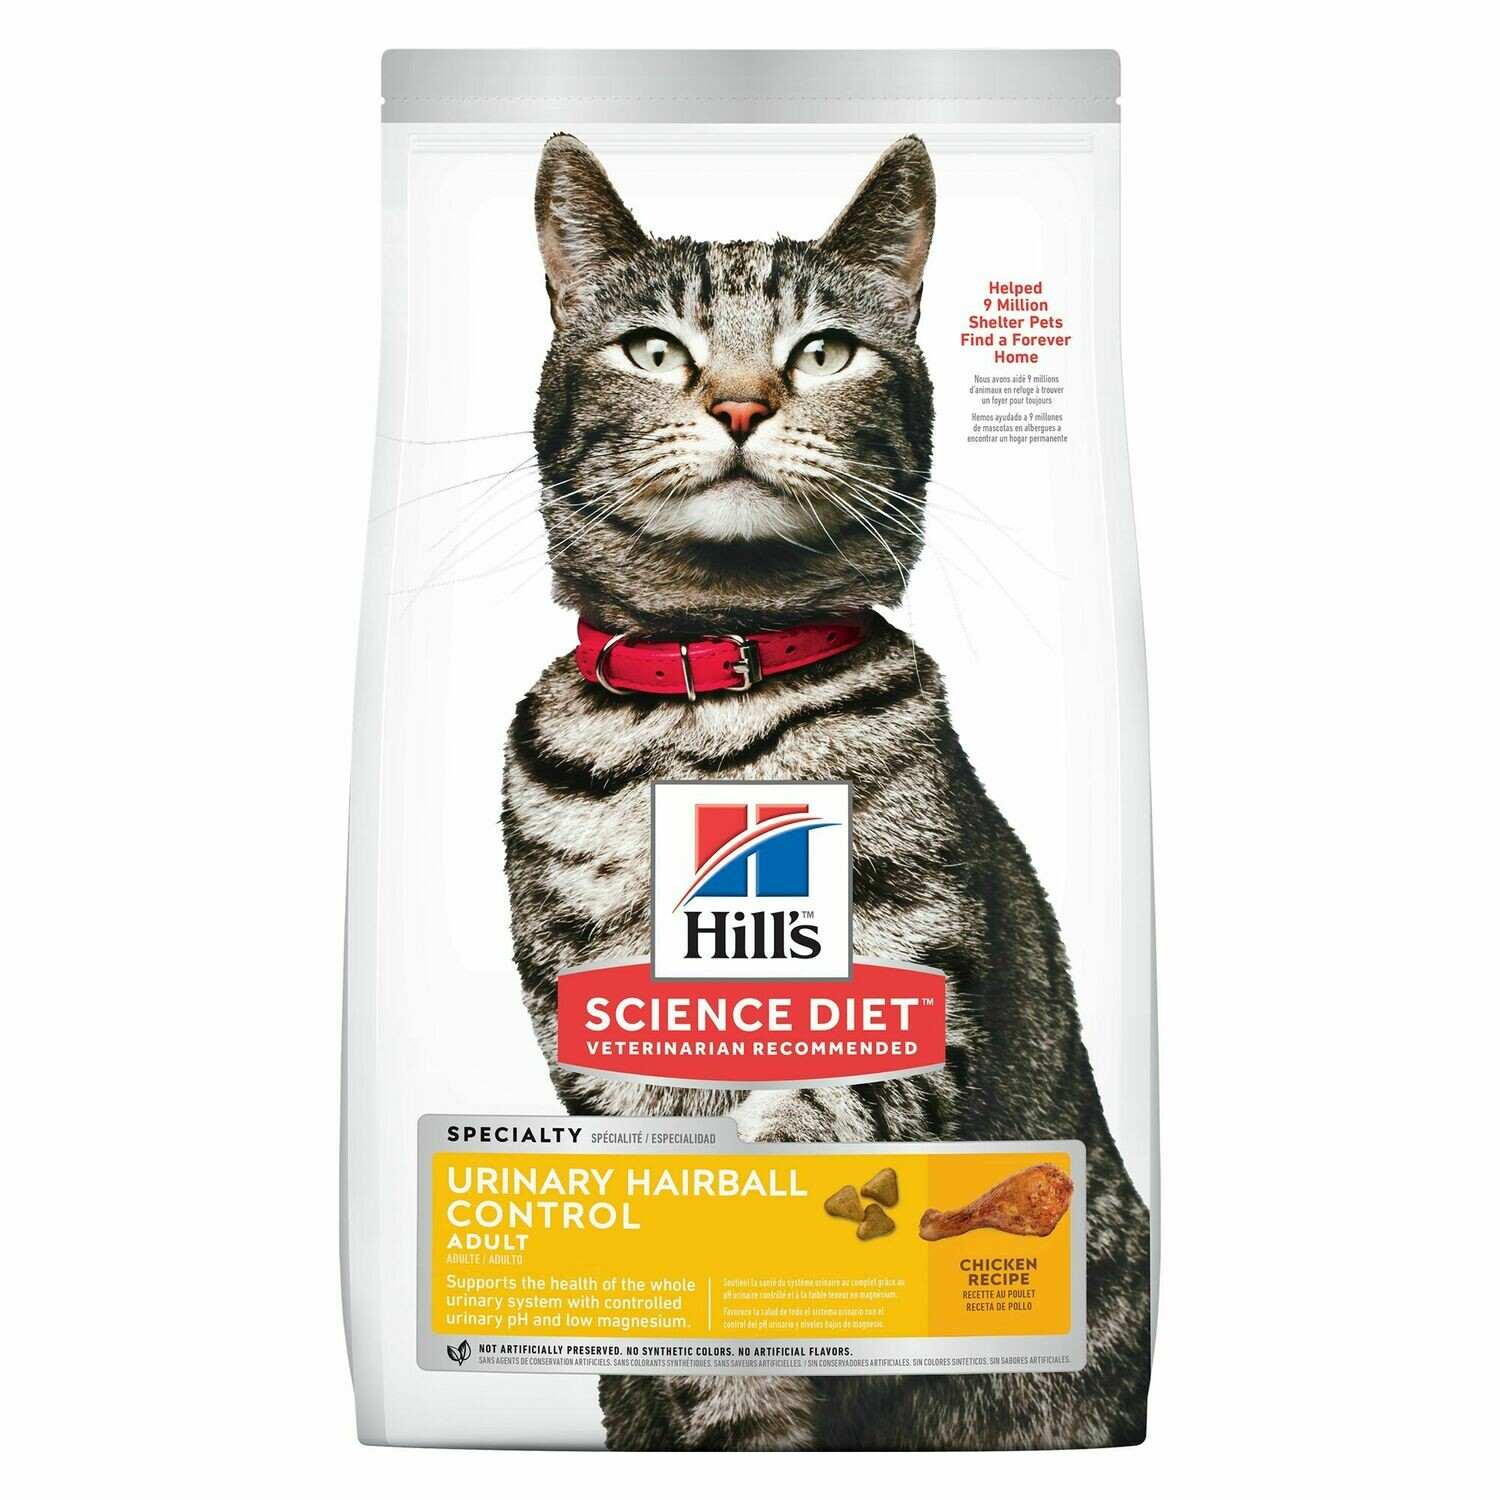 HILL'S SCIENCE DIET CAT - ADULT URINARY HARIBALL CONTROL 3.5LB